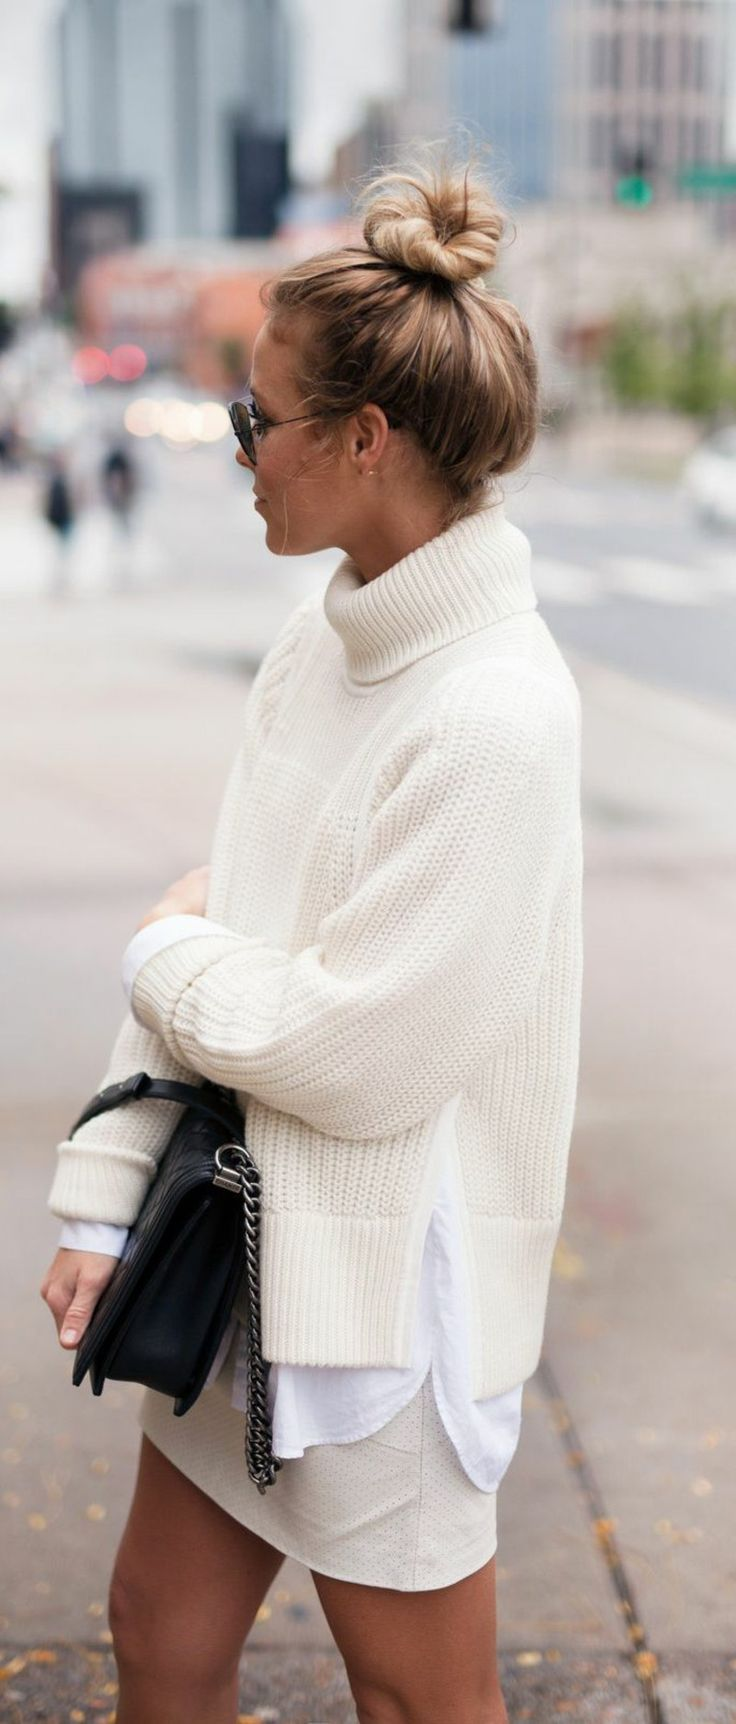 Mini skirt with Turtleneck Sweater casual style